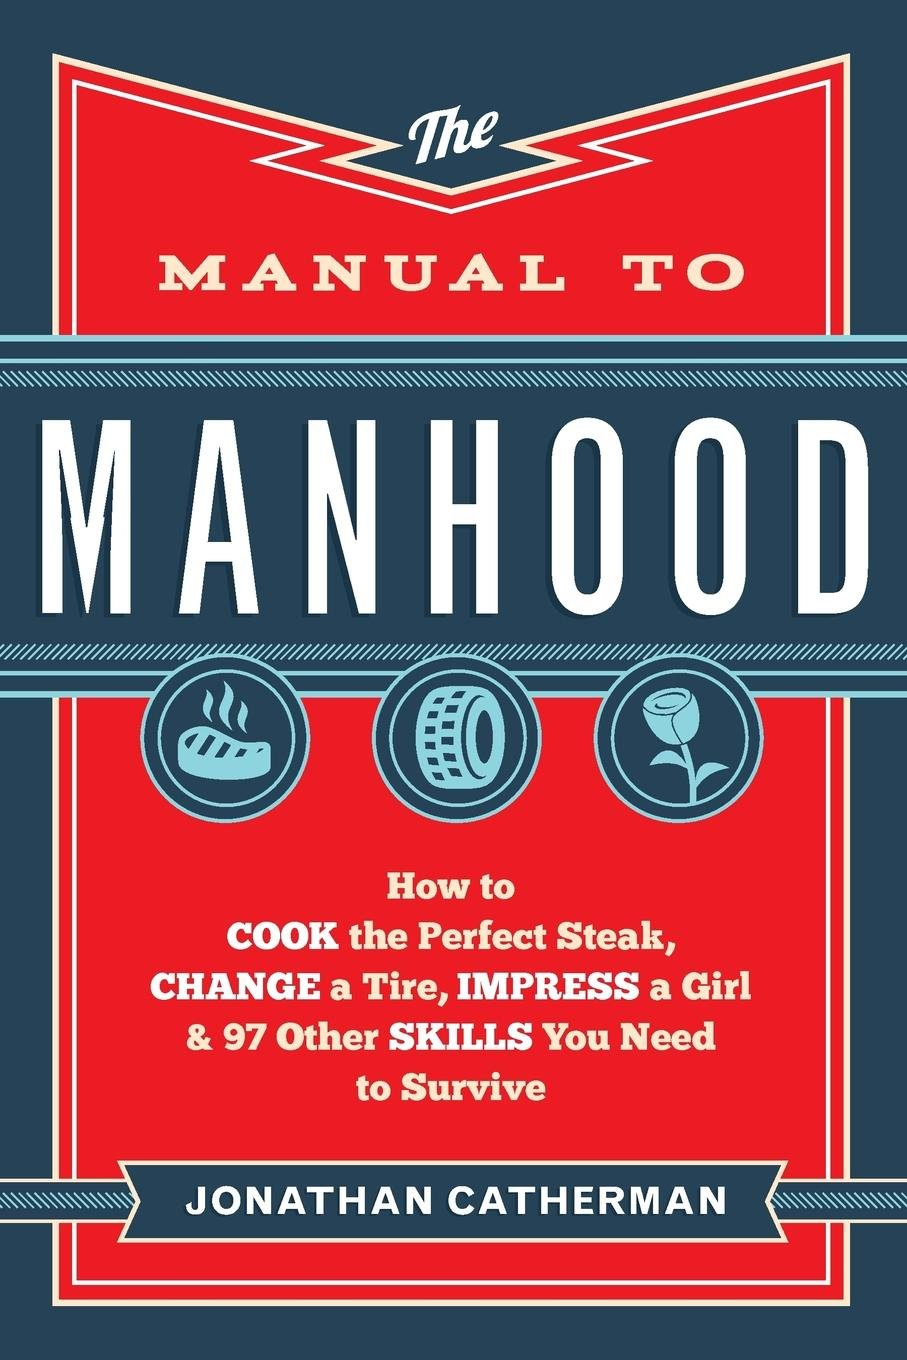 Amazon.com: The Manual to Manhood: How to Cook the Perfect Steak, Change a  Tire, Impress a Girl & 97 Other Skills You Need to Survive (9780800722296):  ...